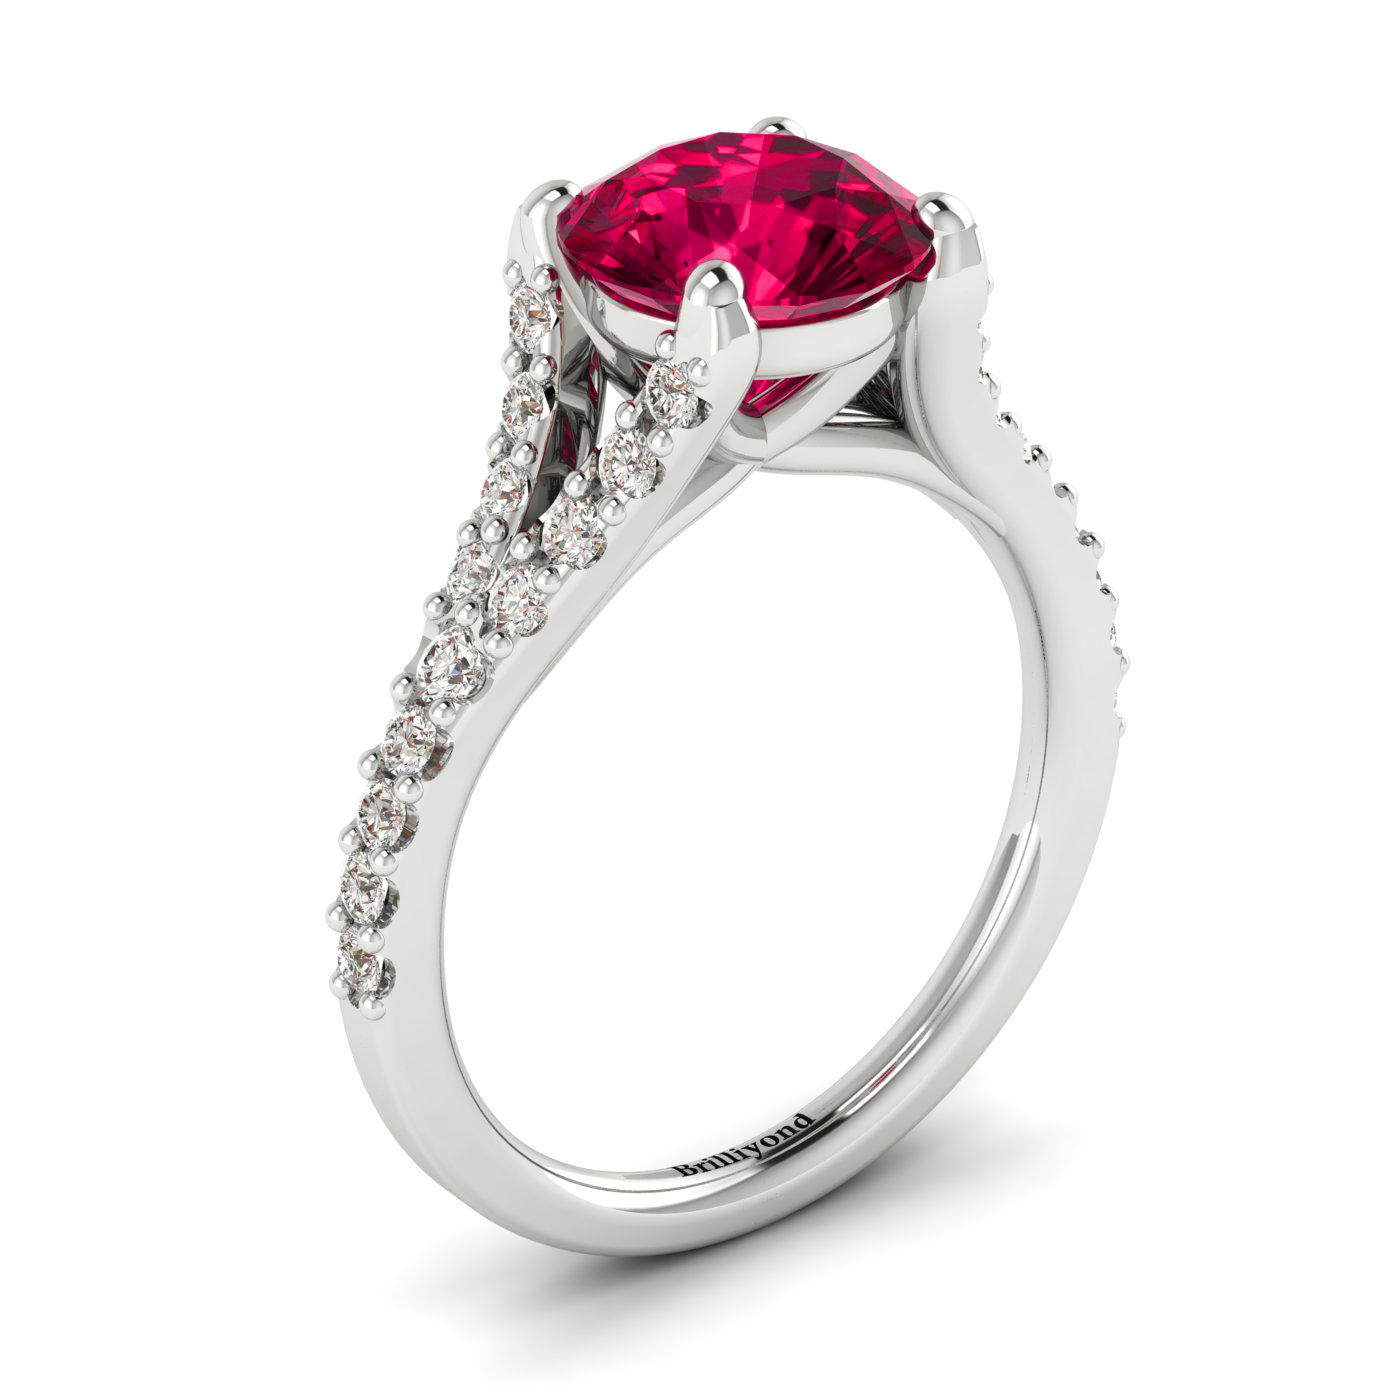 Red Ruby and Conflict-free Diamonds on 18k White Gold Band